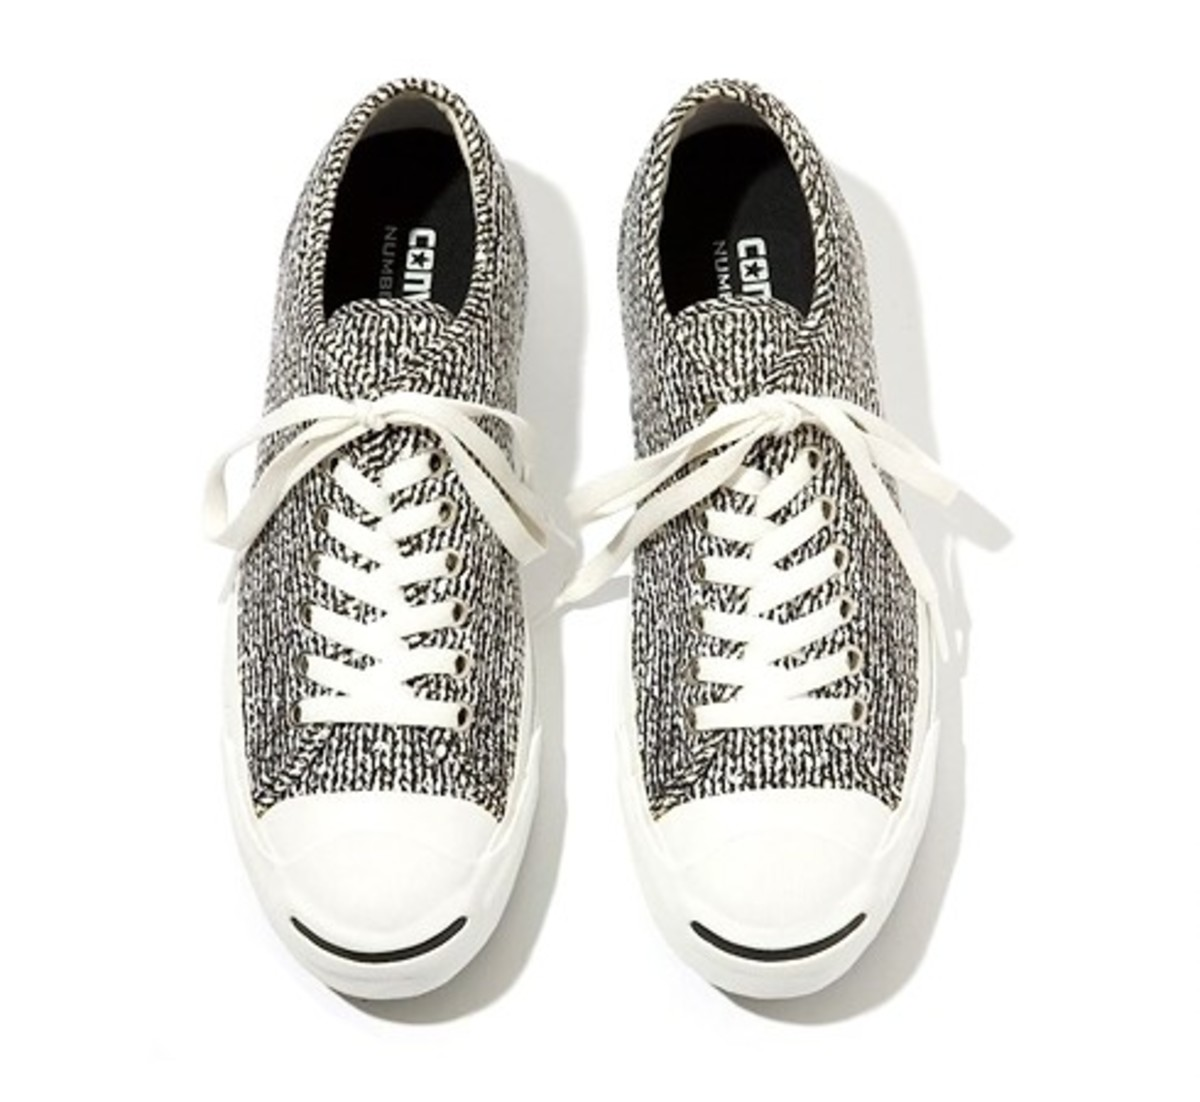 Converse Jack Purcell x NUMBER (N)INE - 0